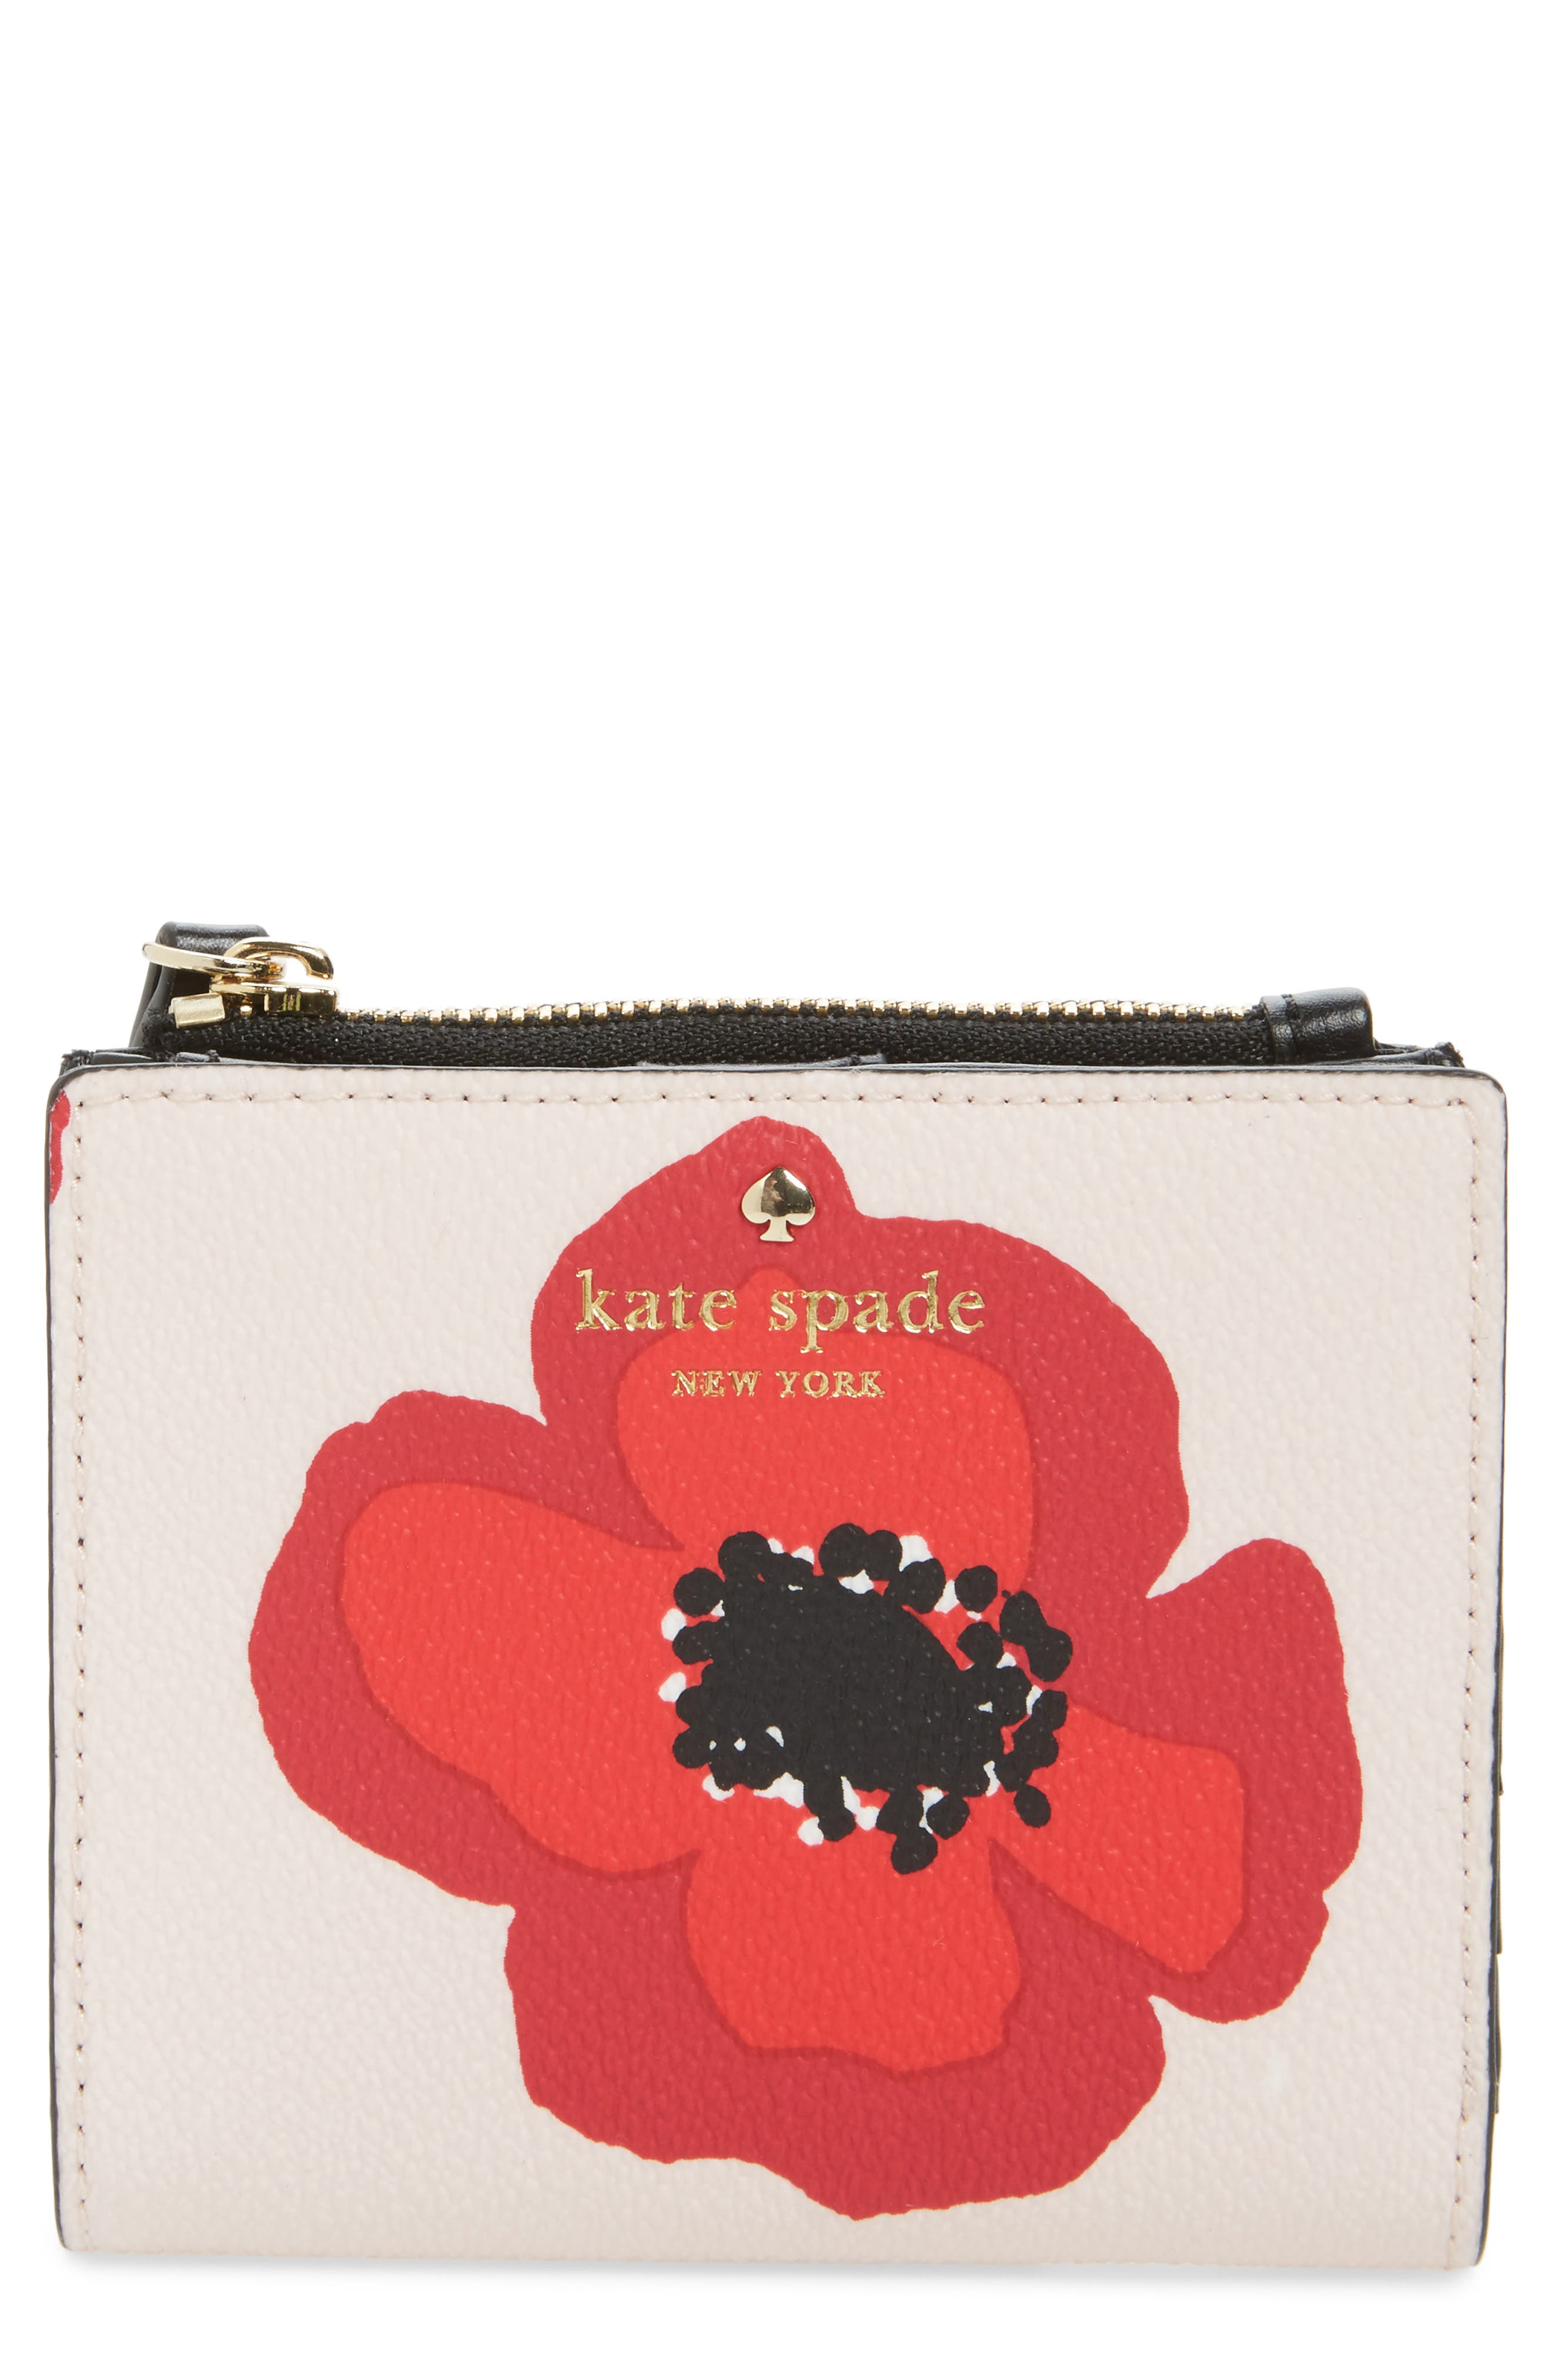 hyde lane poppy adalyn leather wallet,                         Main,                         color, Rose Dew Multi